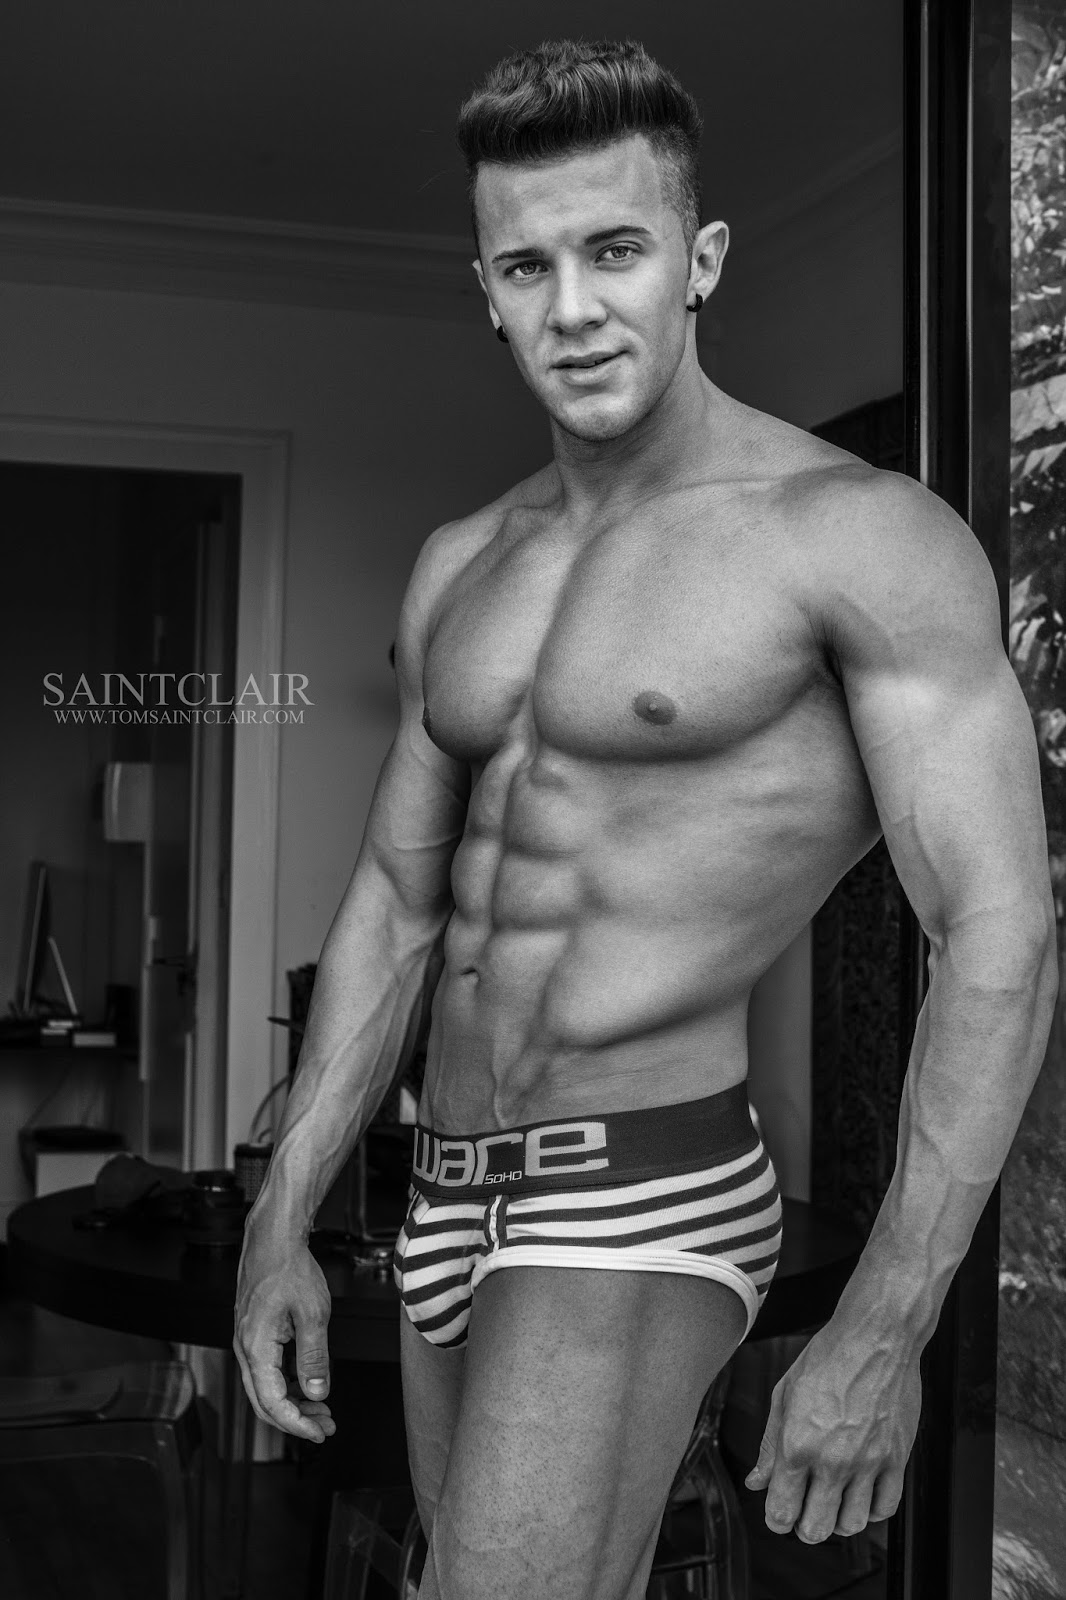 Nicolas Jordy by Tom Saint Clair